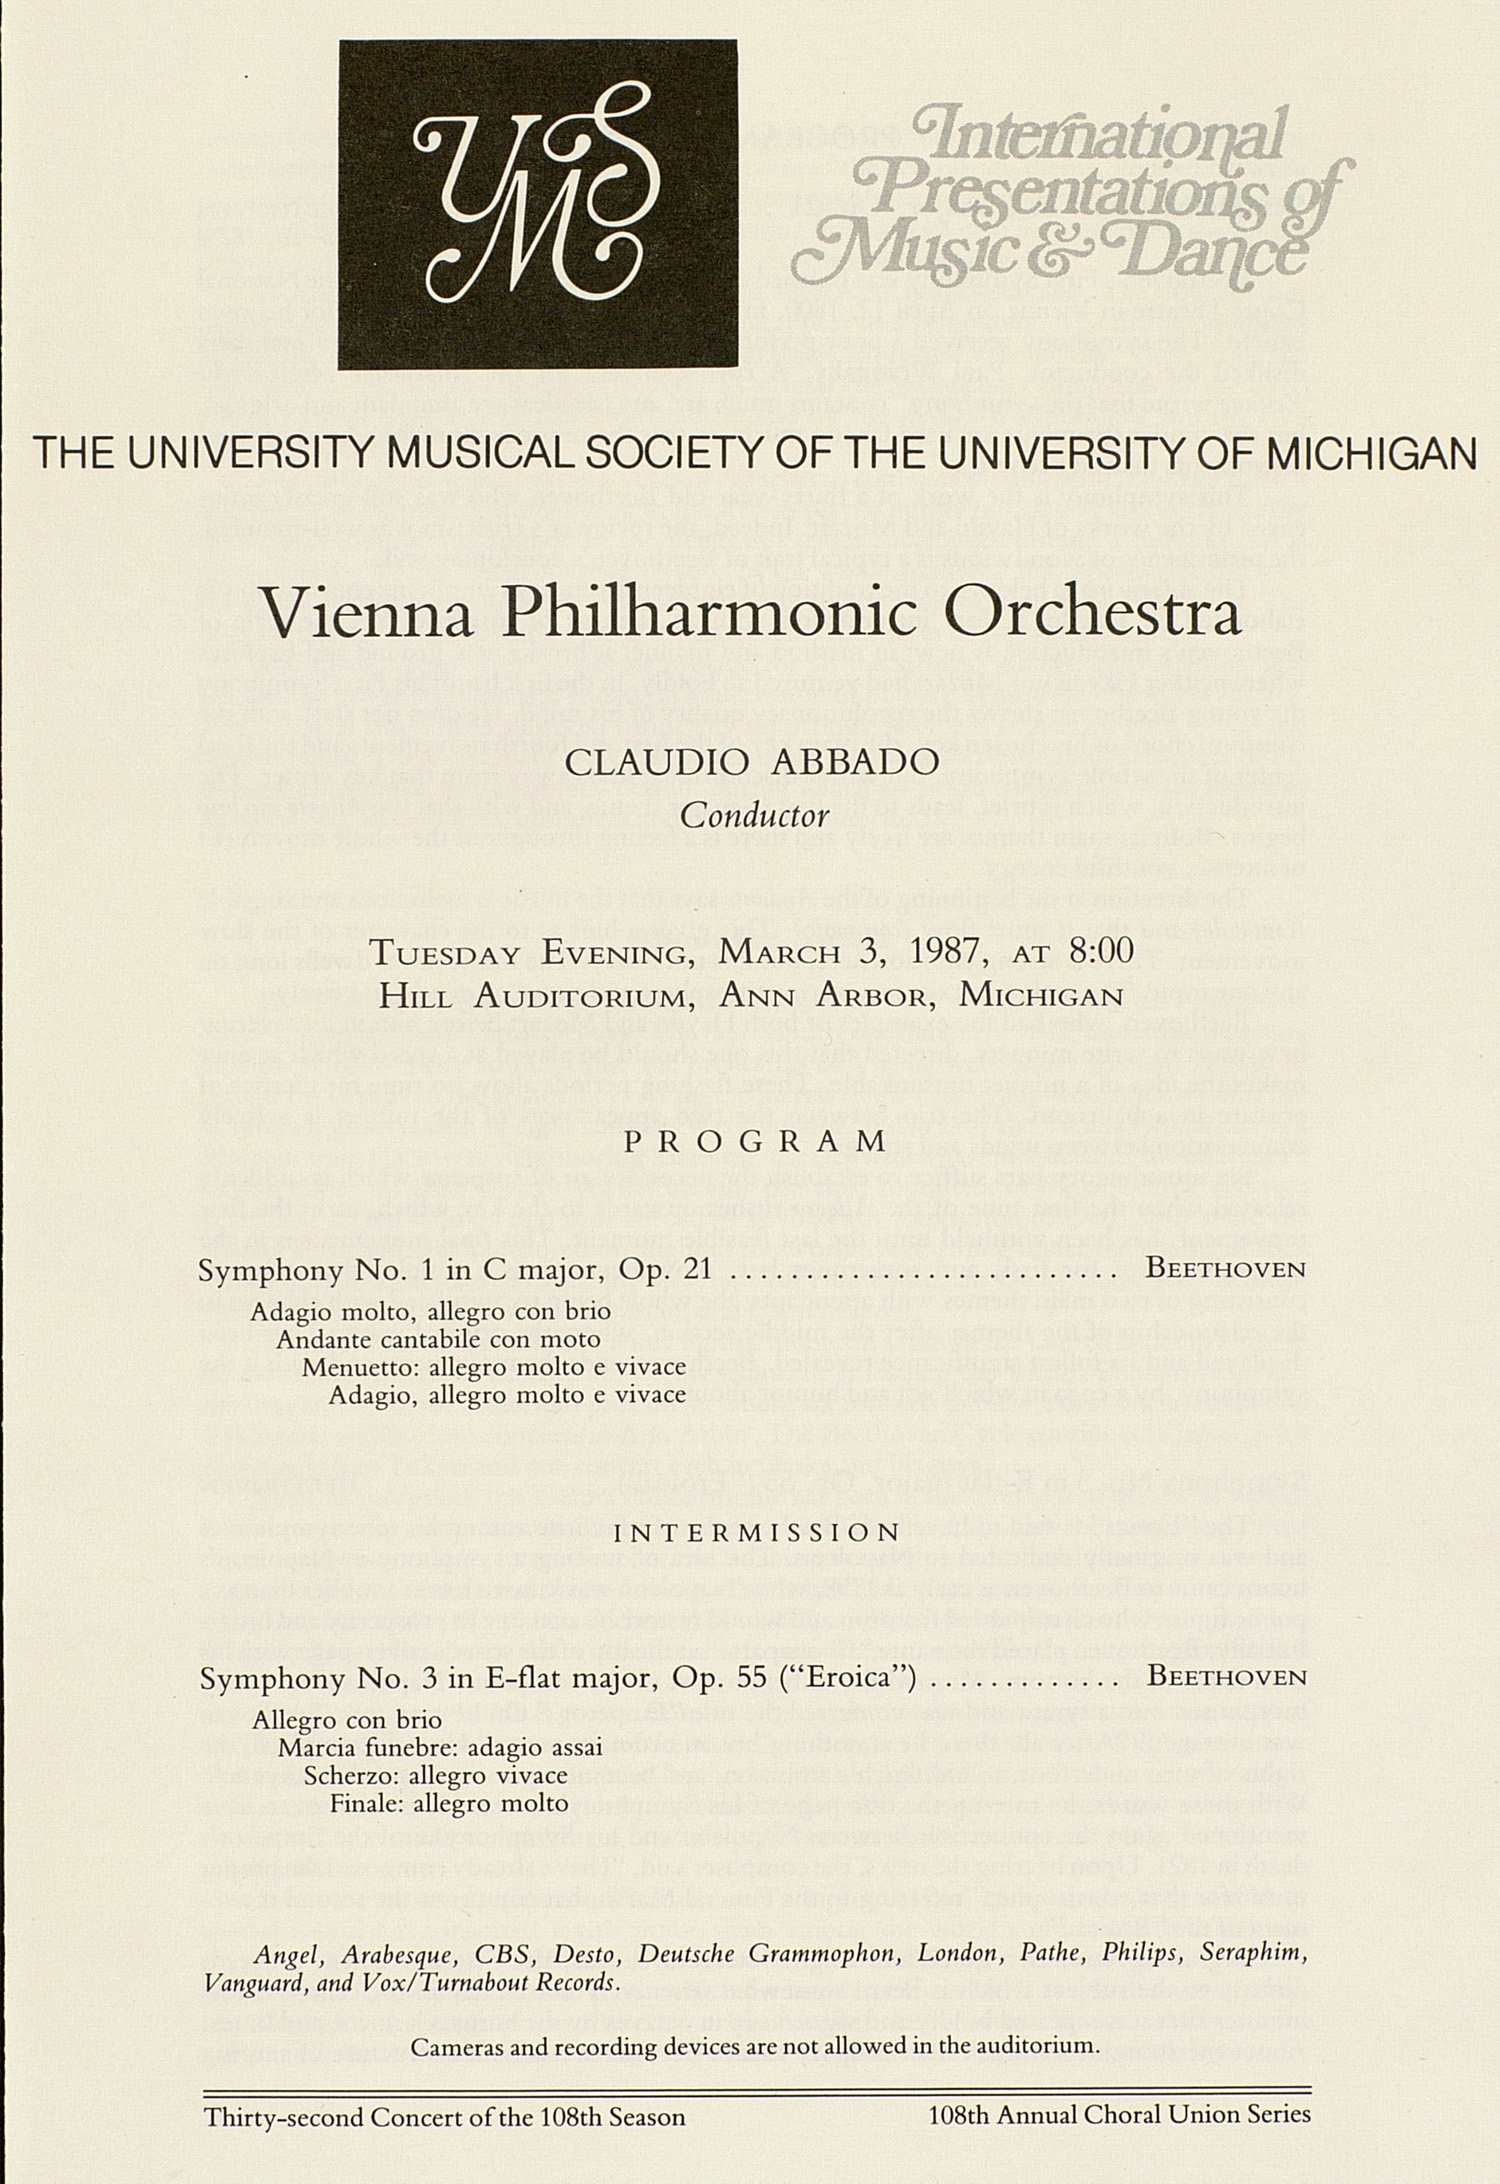 UMS Concert Program, March 3, 1987: International Presentations Of Music & Dance -- Vienna Philharmonic Orchestra image